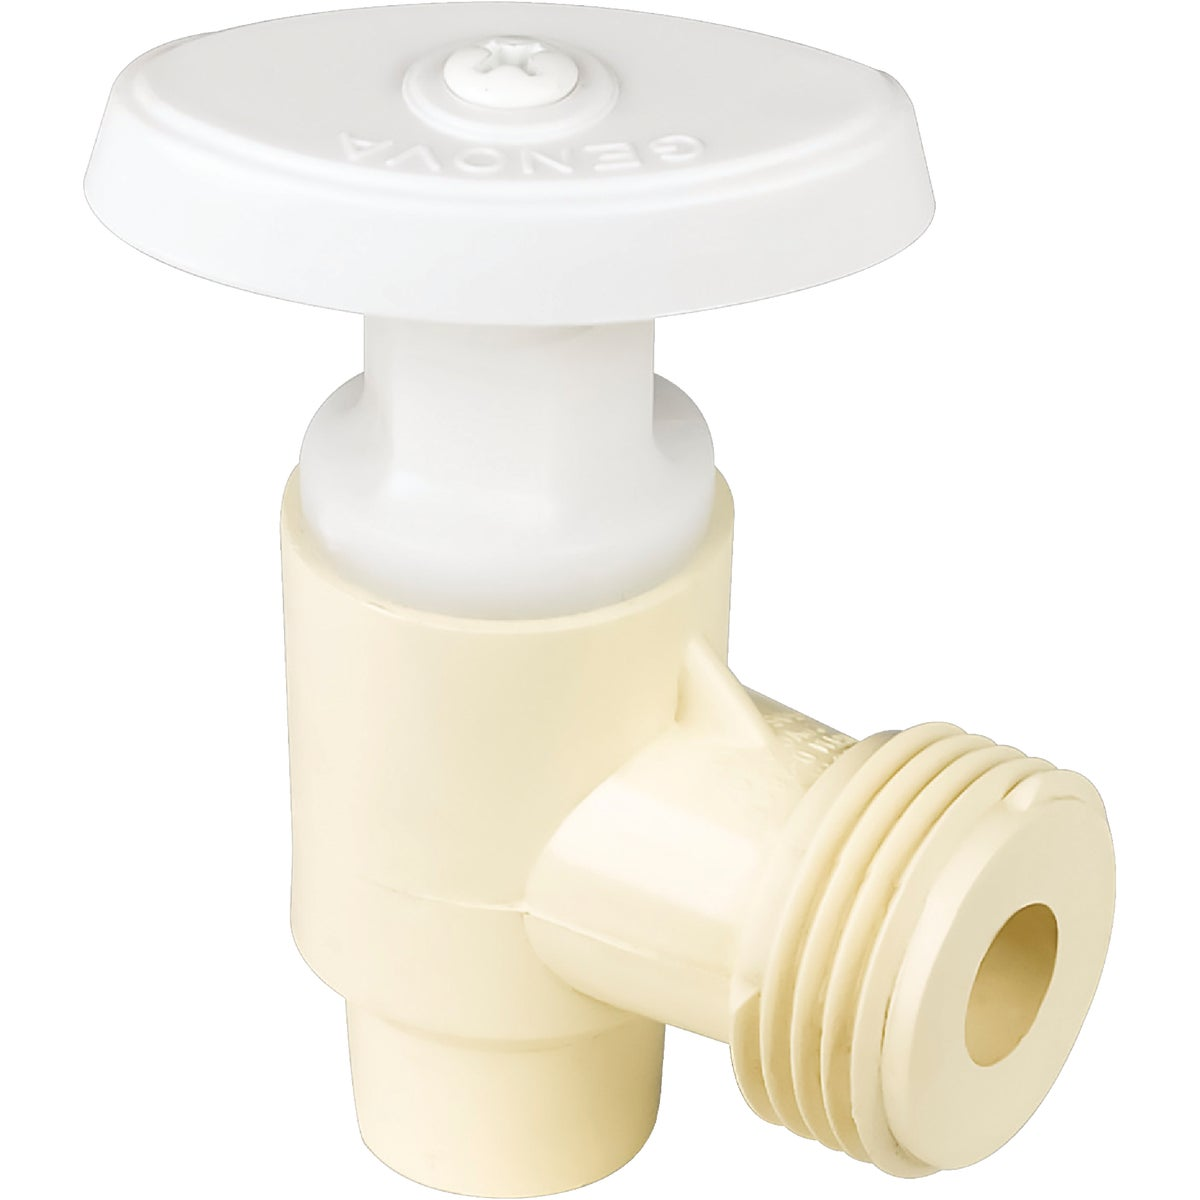 "1/2"" WASHER HOSE VALVE"